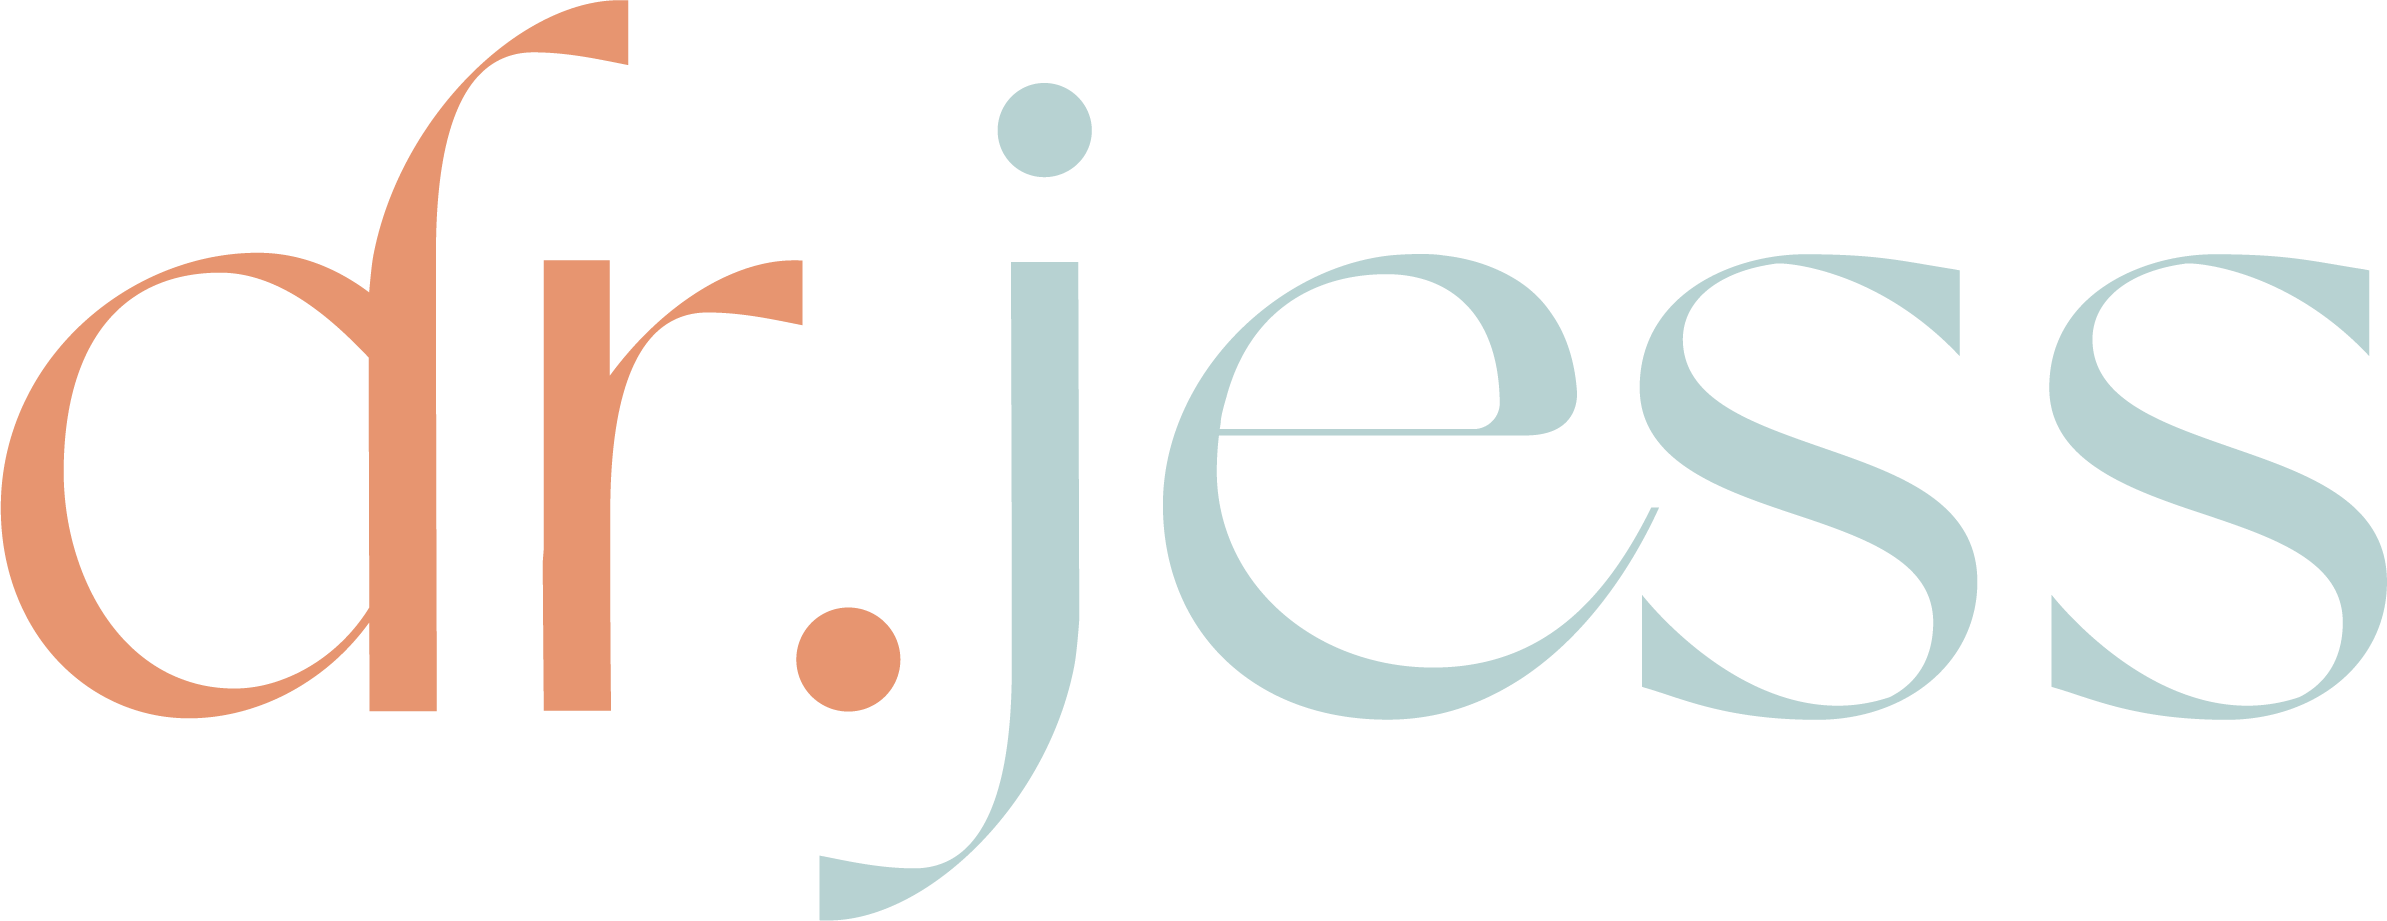 Dr. Jess | Jessica Williams, PsyD, MSW | INSPIRE-ology